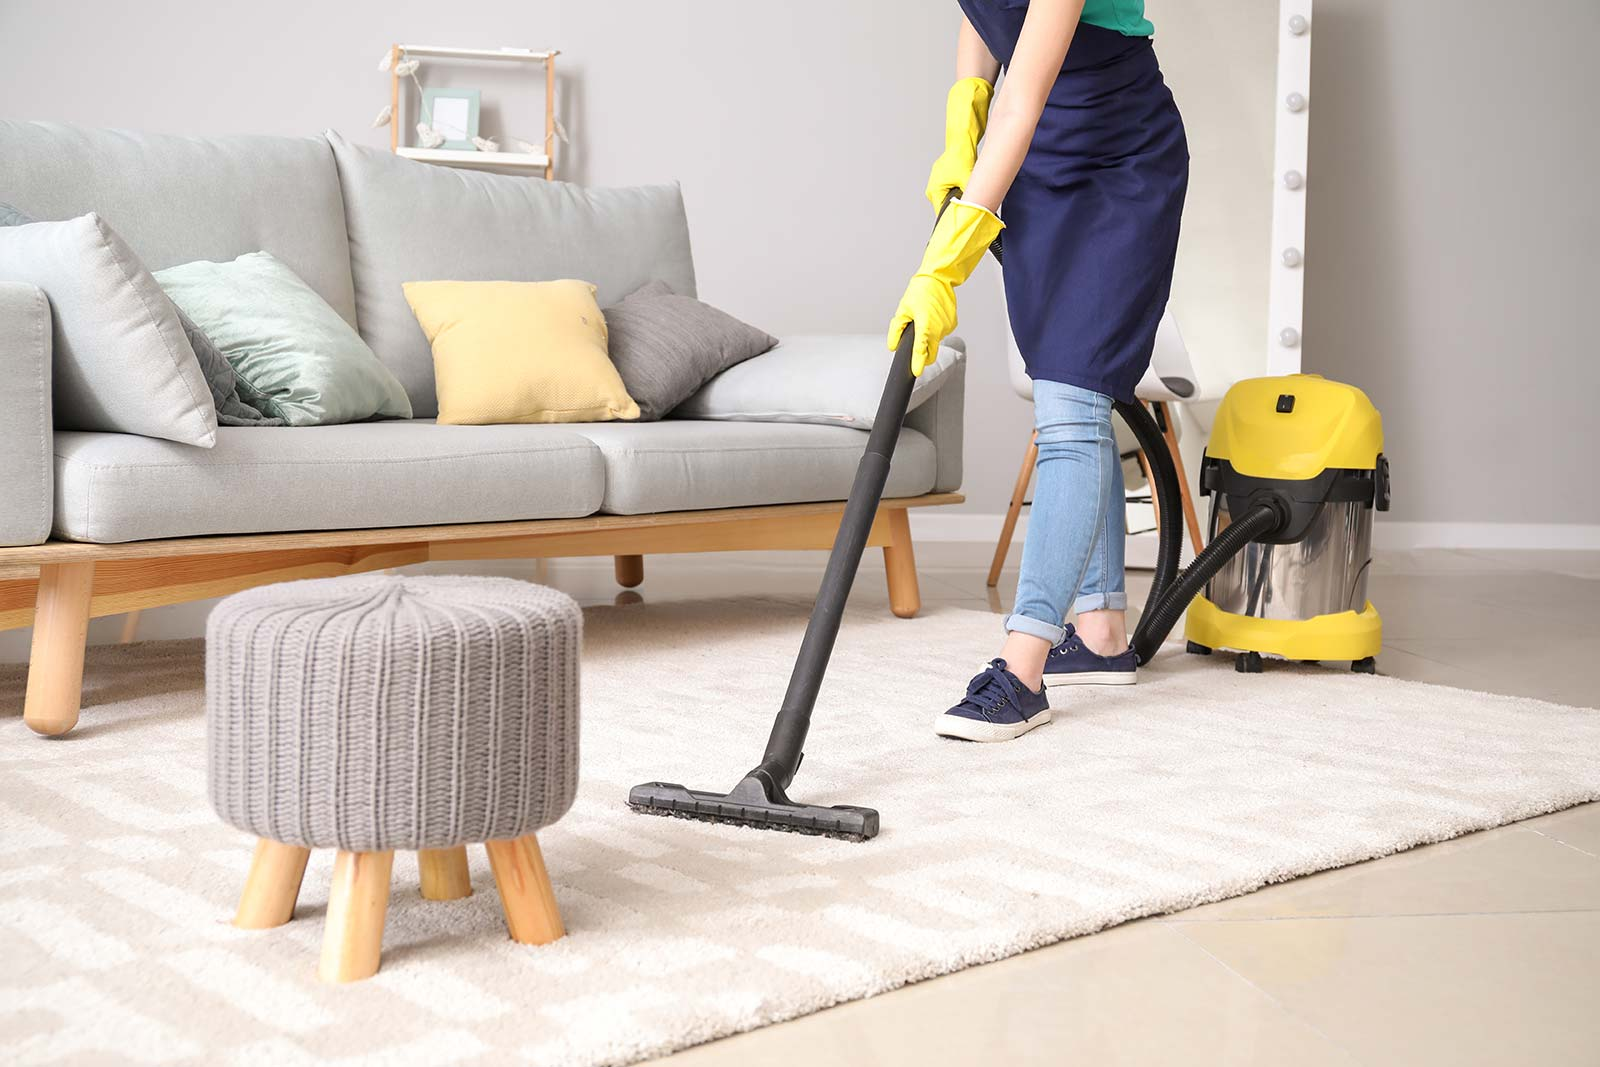 Escape from Everyday Chores by Hiring Maid Service Vancouver